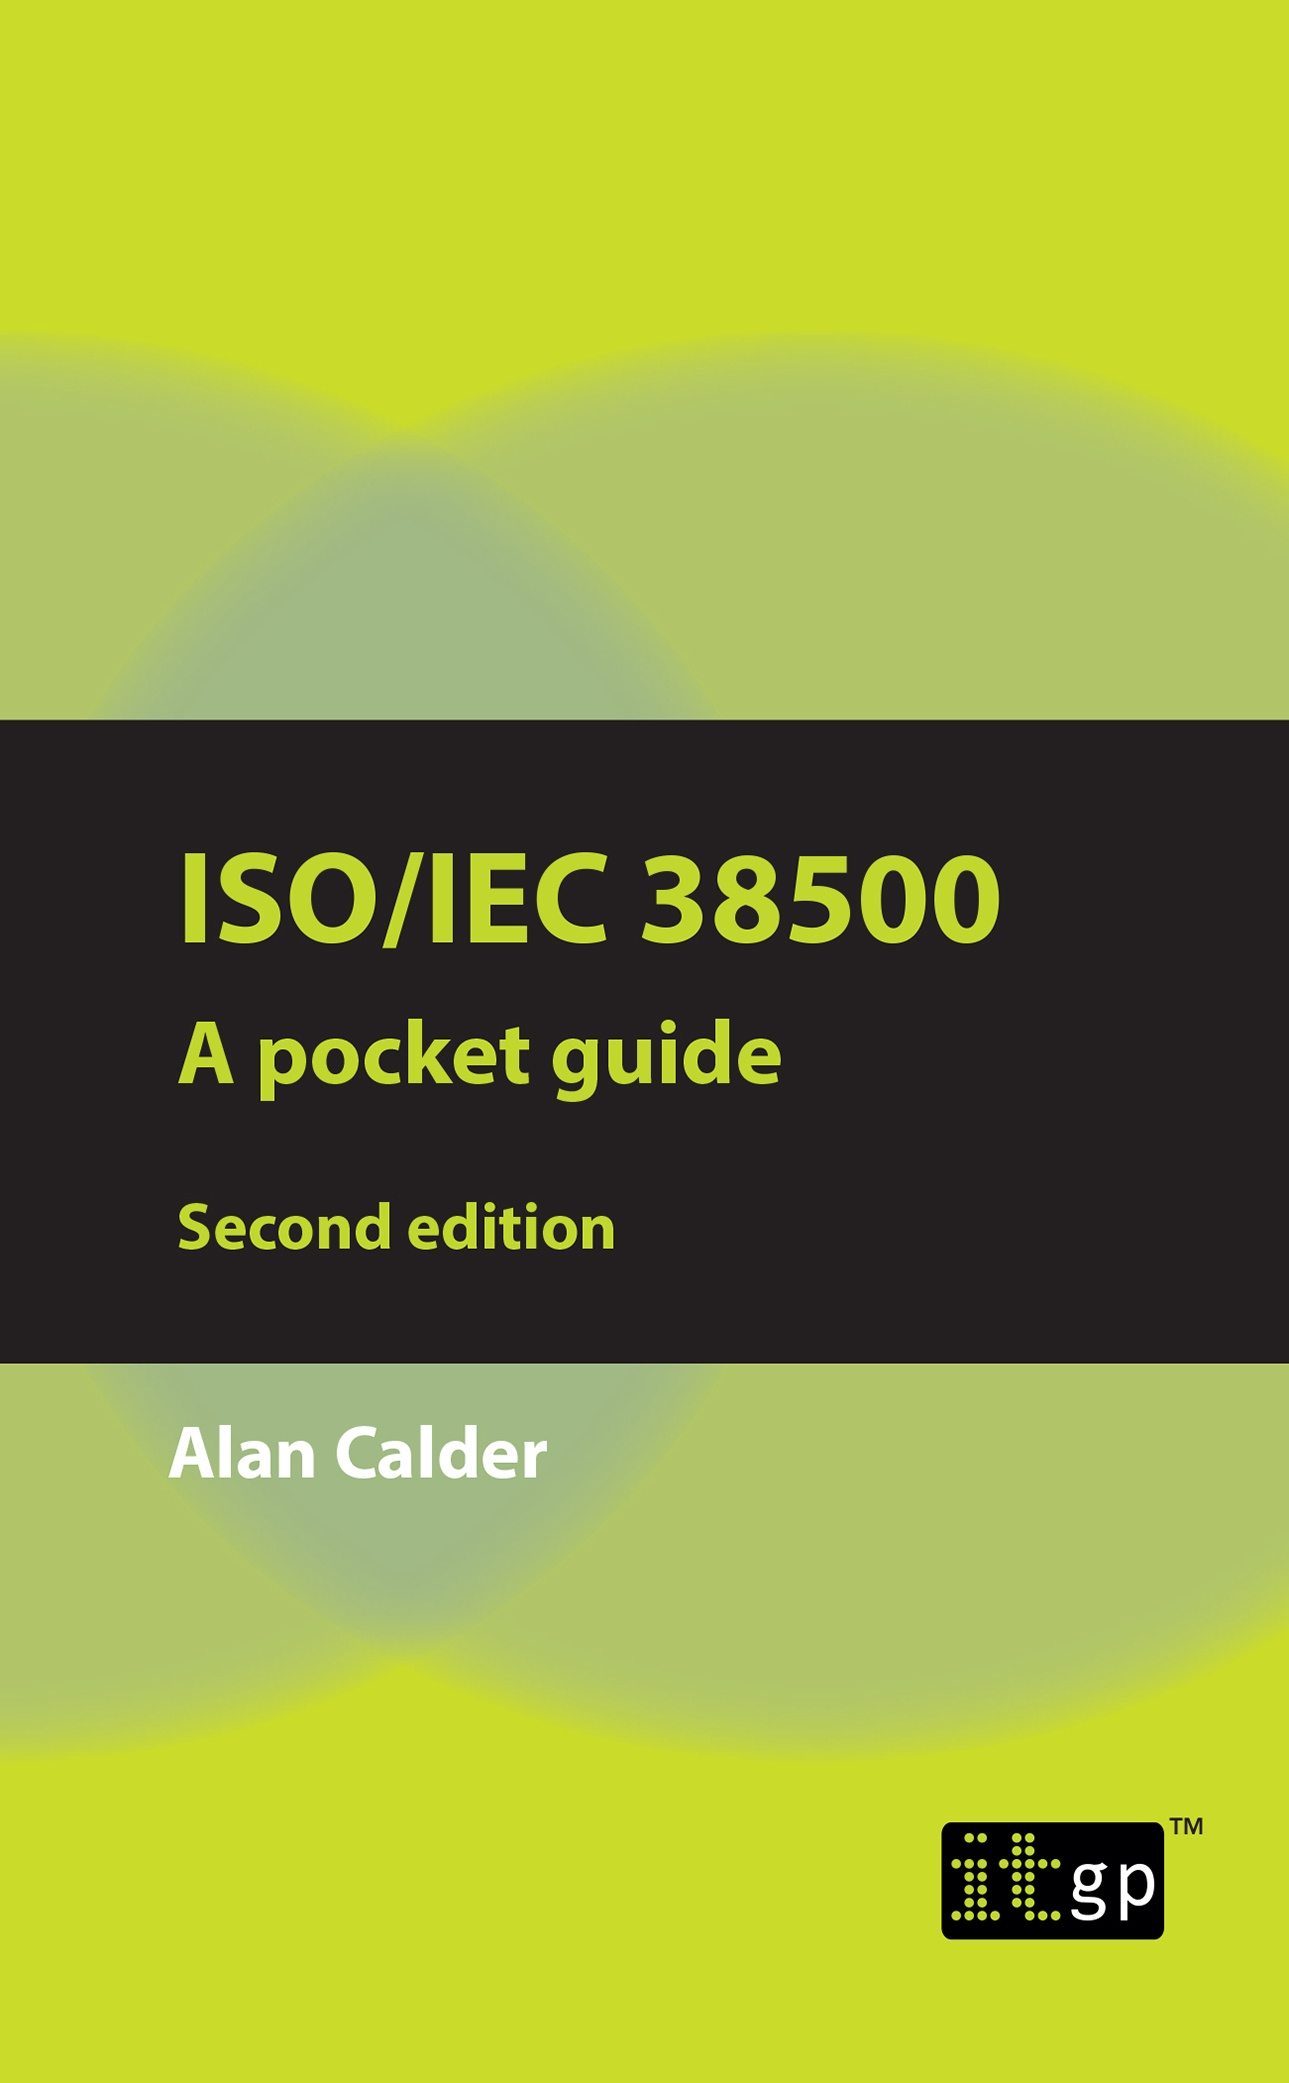 ISO/IEC 38500: A pocket guide, second edition